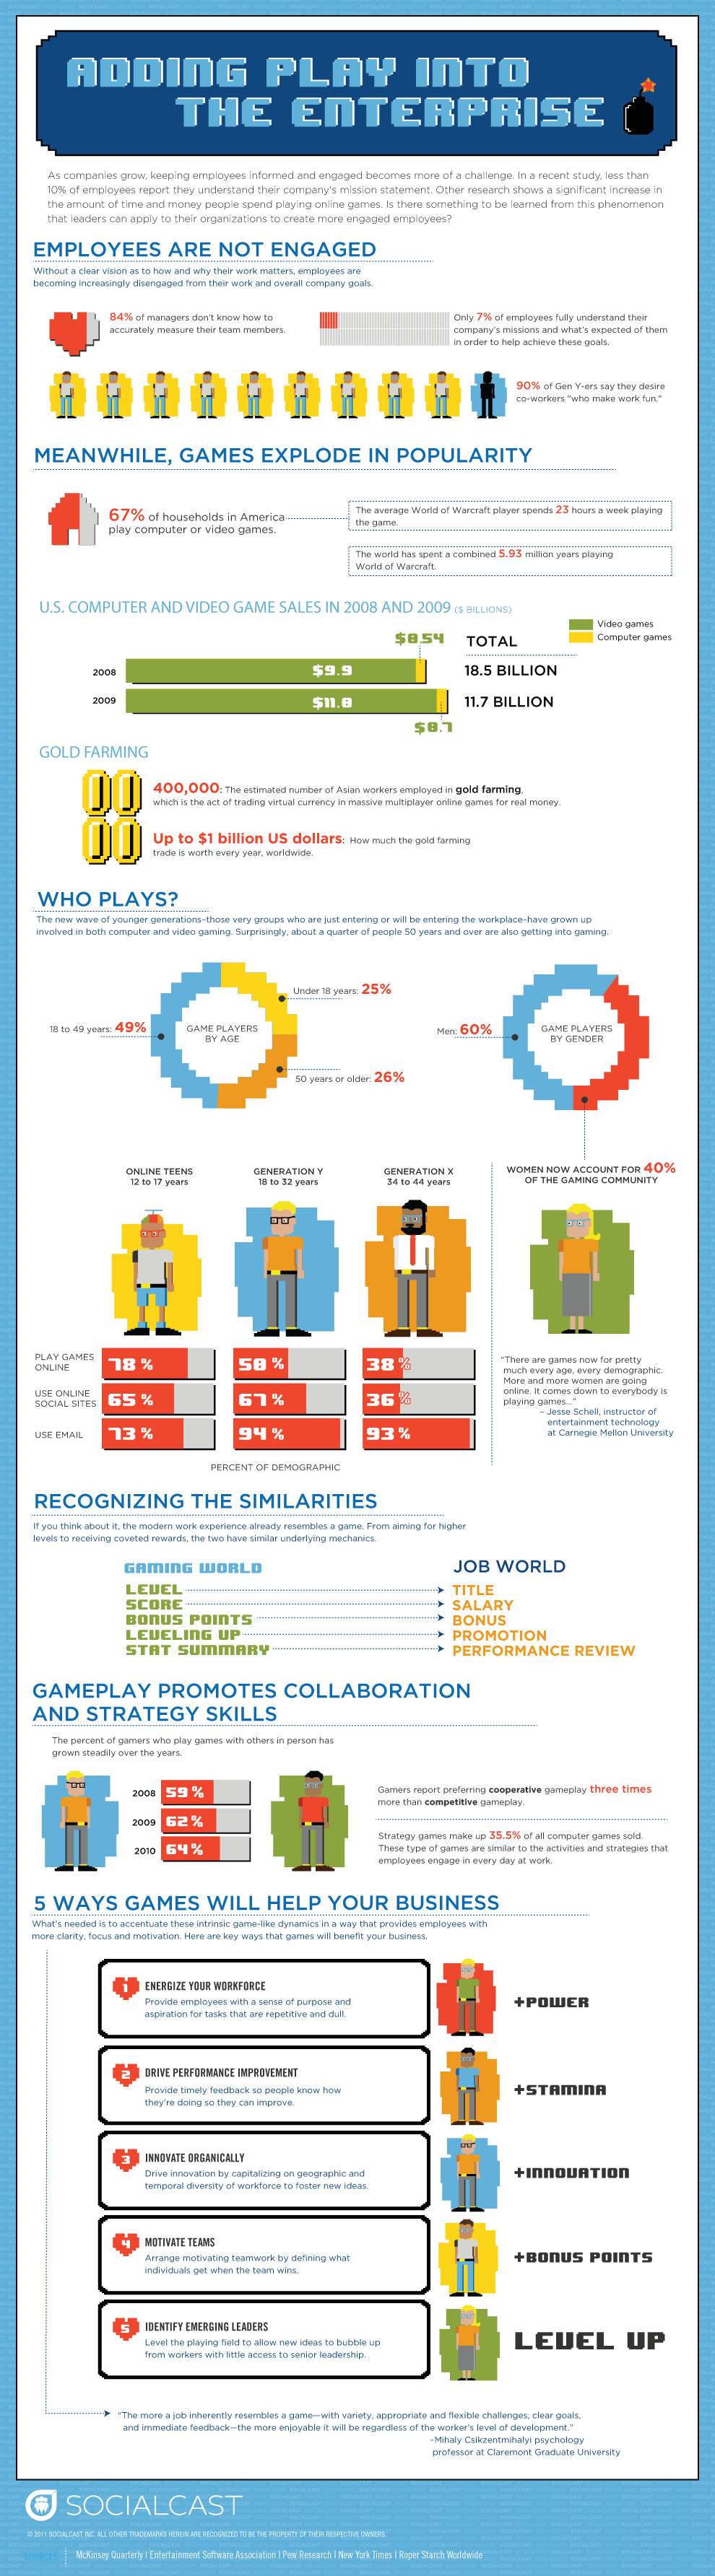 Gamification of work performance